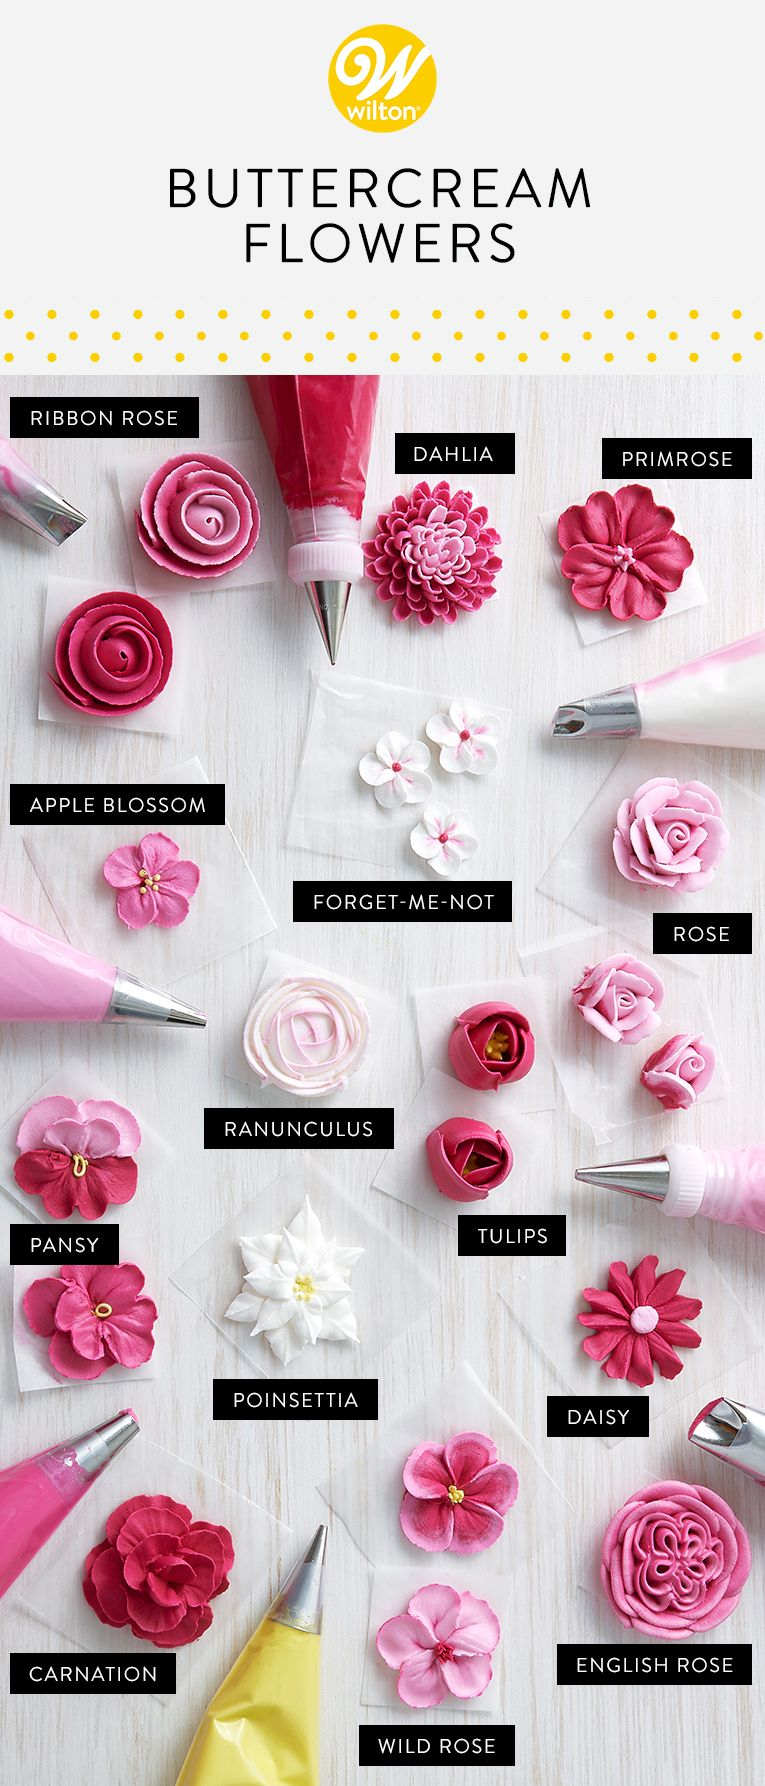 How To Make Buttercream Flowers Buttercream Flowers Carnation And